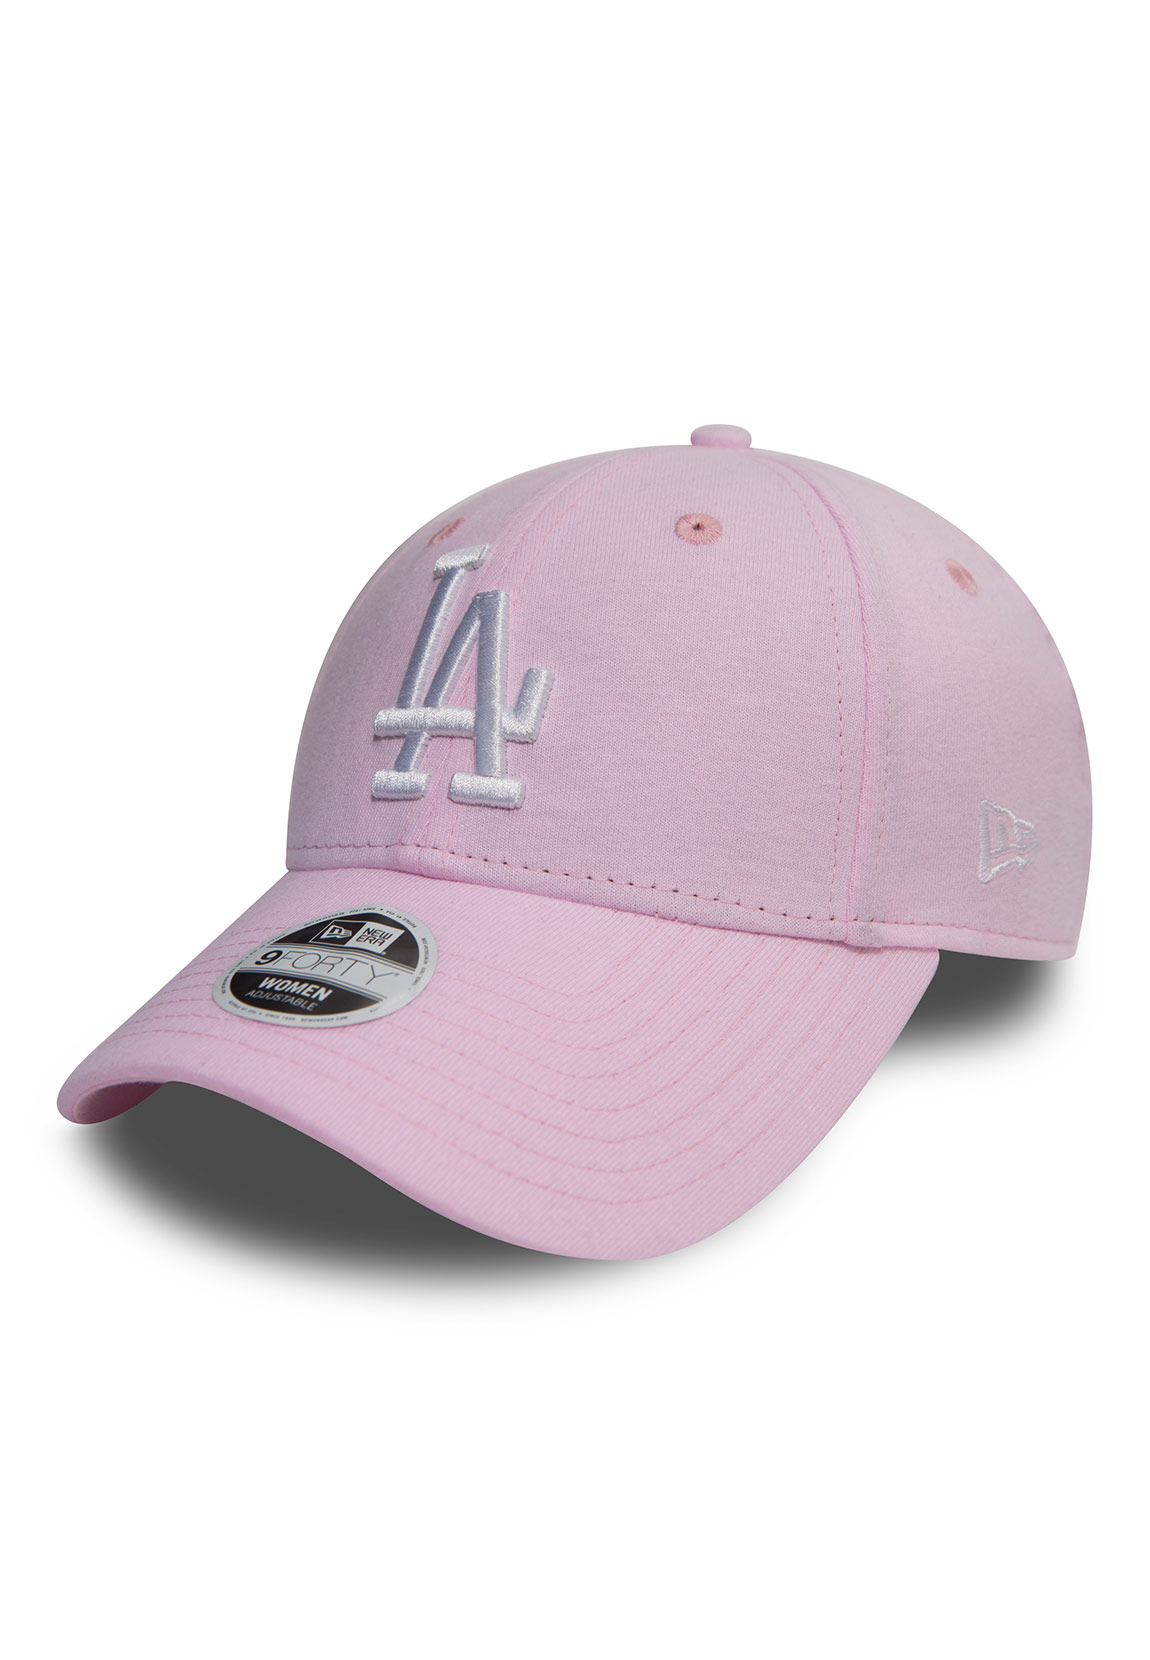 deac0c1f21463 New Era Jersey 9Forty femmes réglable Casquette NY Yankees Rose